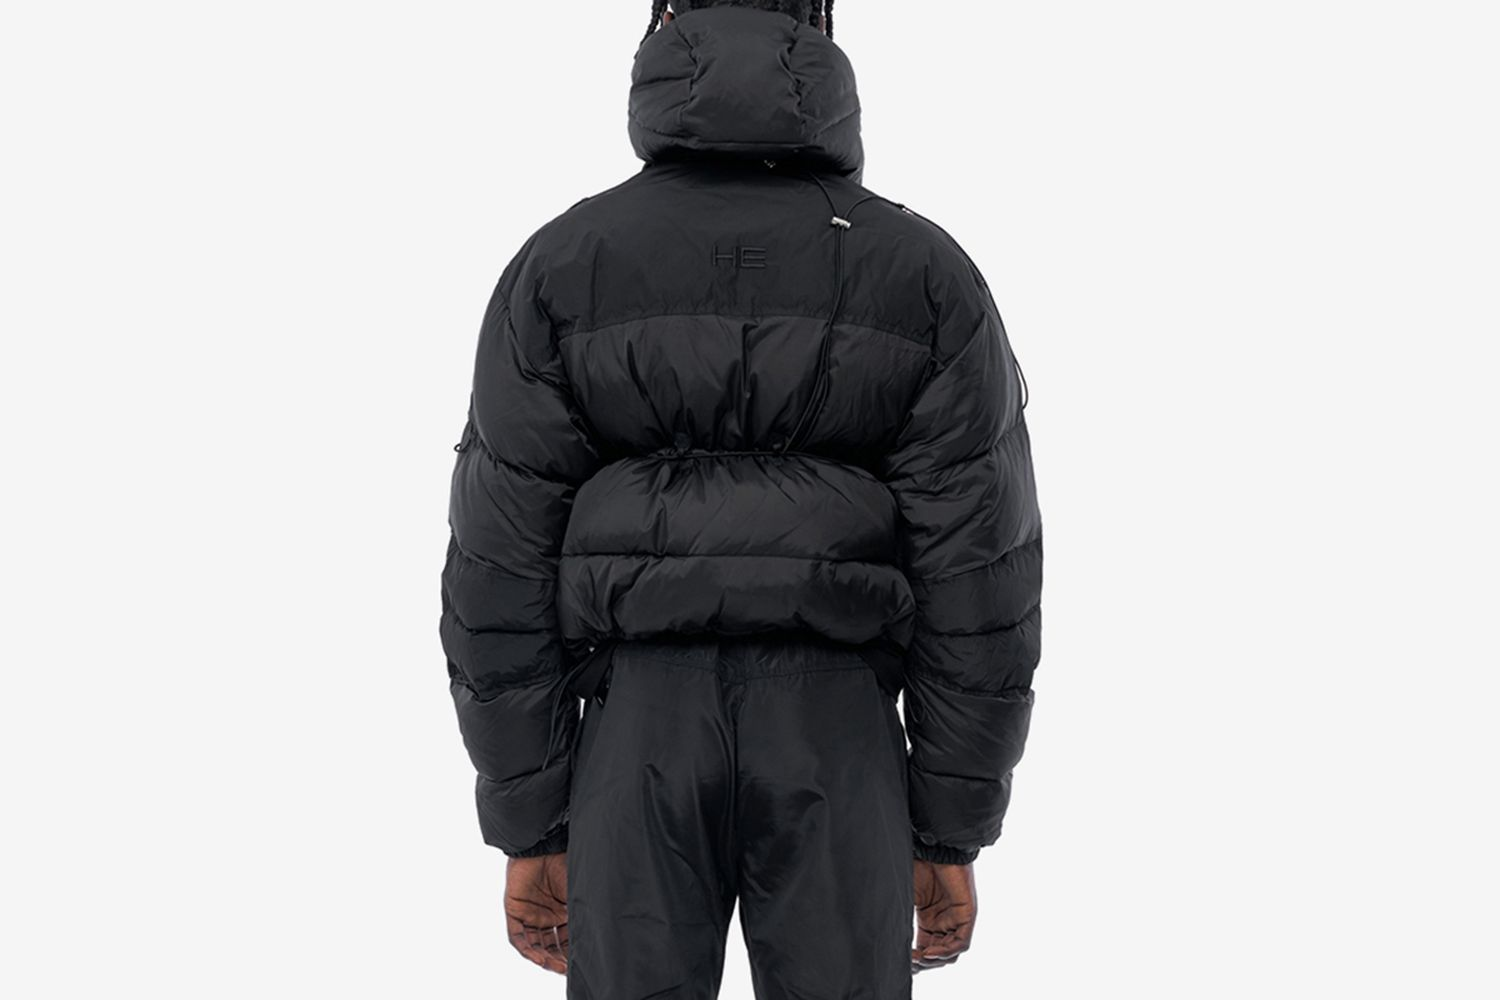 Down Jacket with Elastic Drawstring Attached Pouch